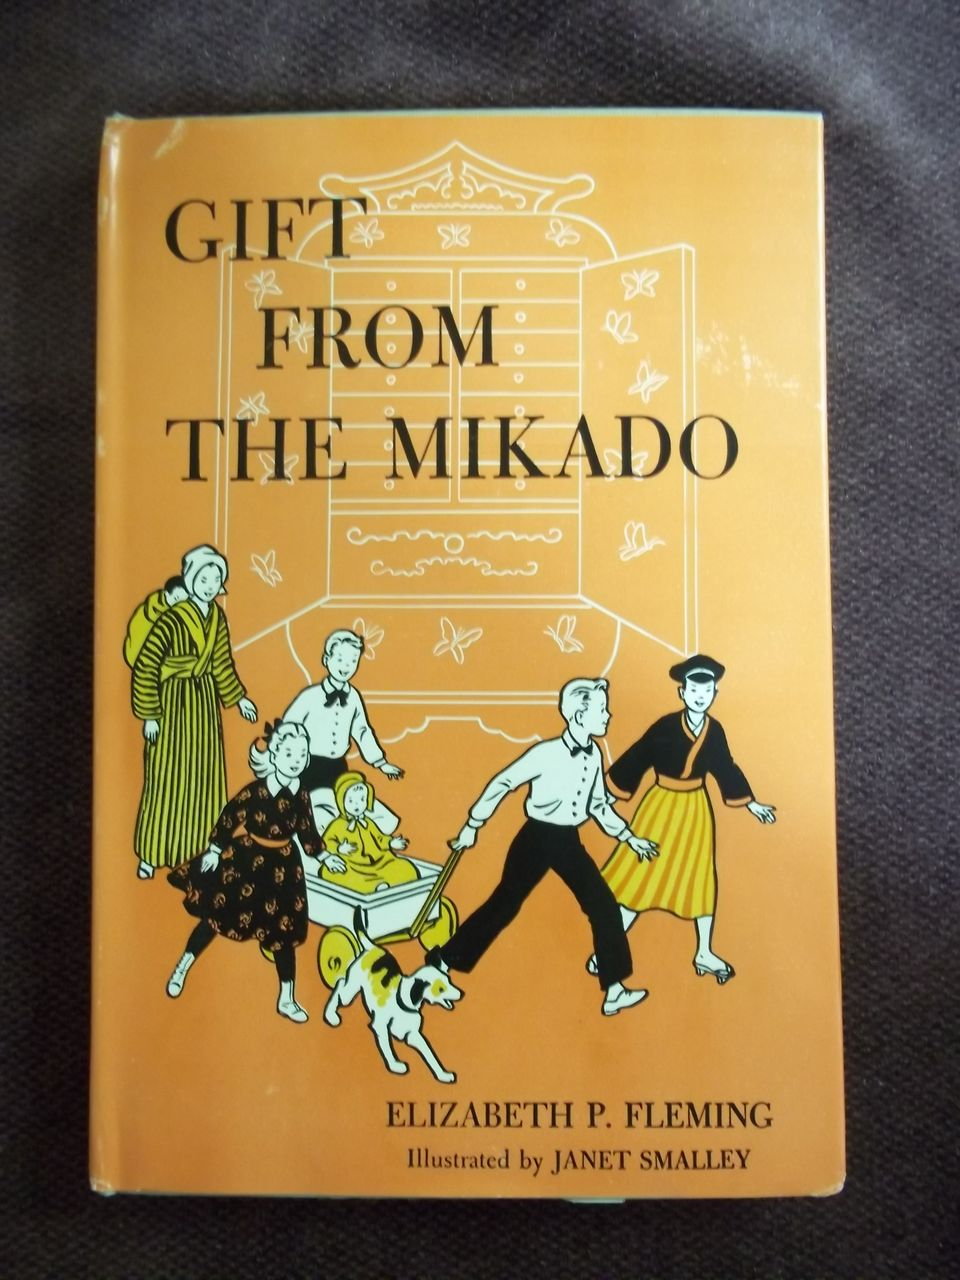 Gift From the Mikado, Elizabeth P. Fleming, Westminster Press 1958: Weekly Reader Children's Book Club